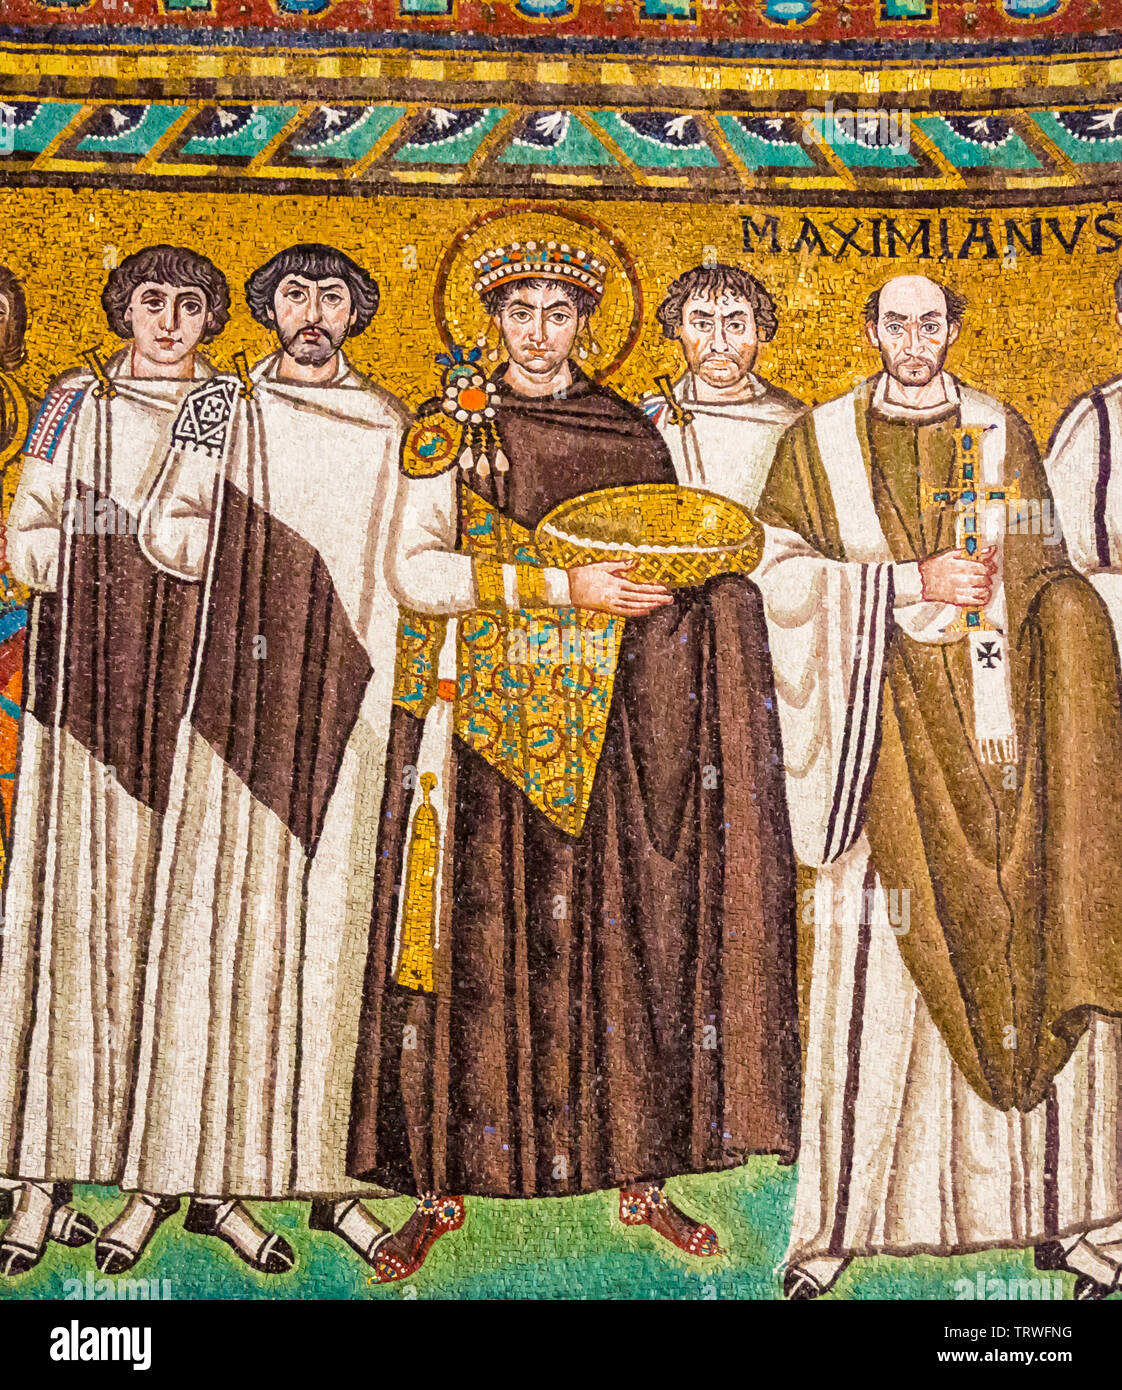 mosaic-of-byzantine-emperor-justinian-bishop-maximian-general-belisarius-and-attendants-basilica-of-san-vitale-ad547-ravenna-emilia-romagna-italy-TRWFNG.jpg